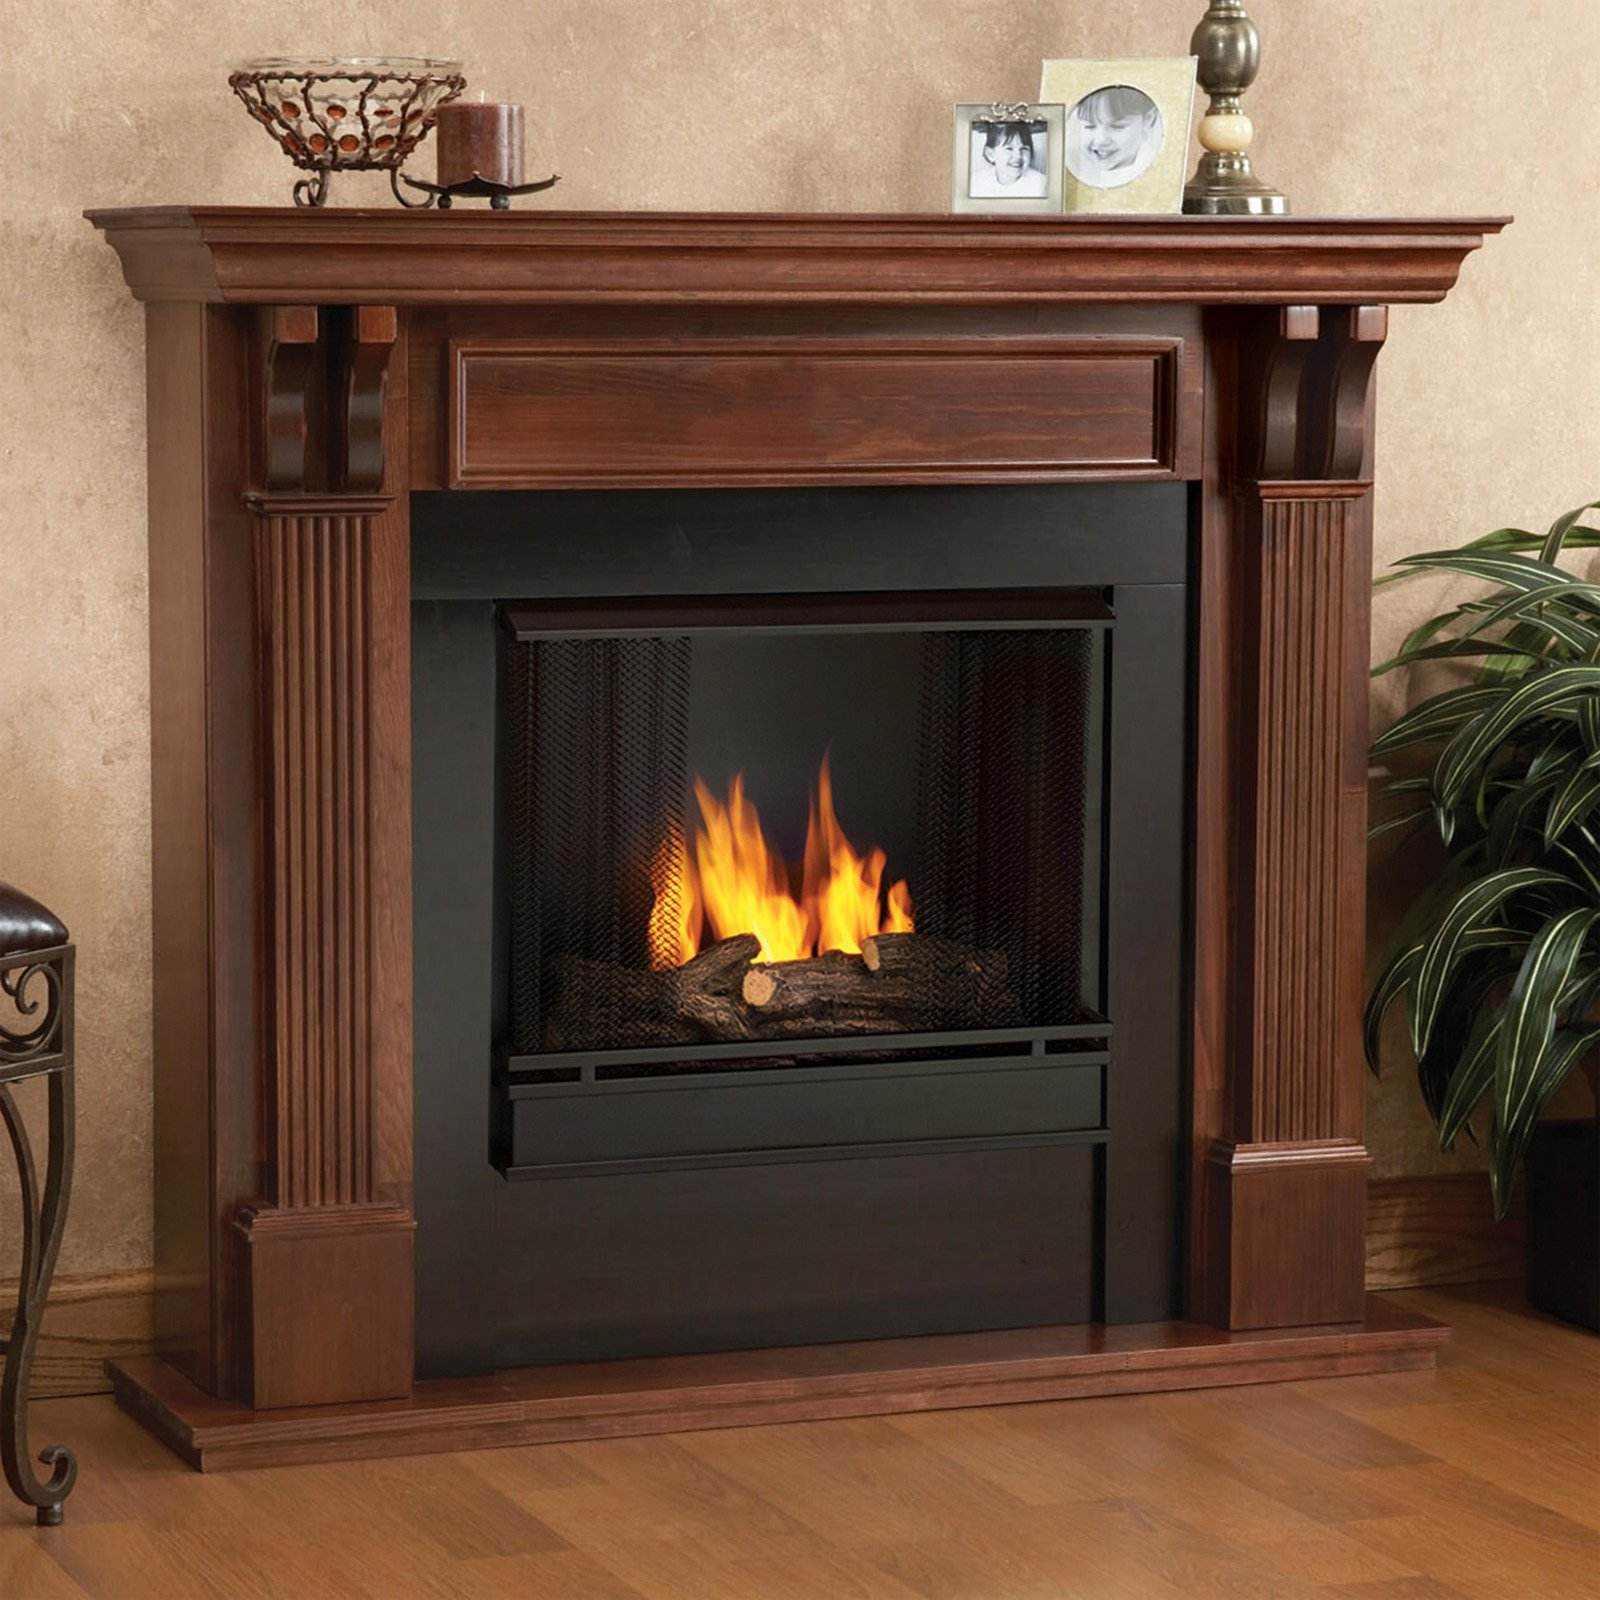 Free Shipping. Buy Real Flame Ashley Indoor Gel Fireplace - Mahogany at Walmart.com